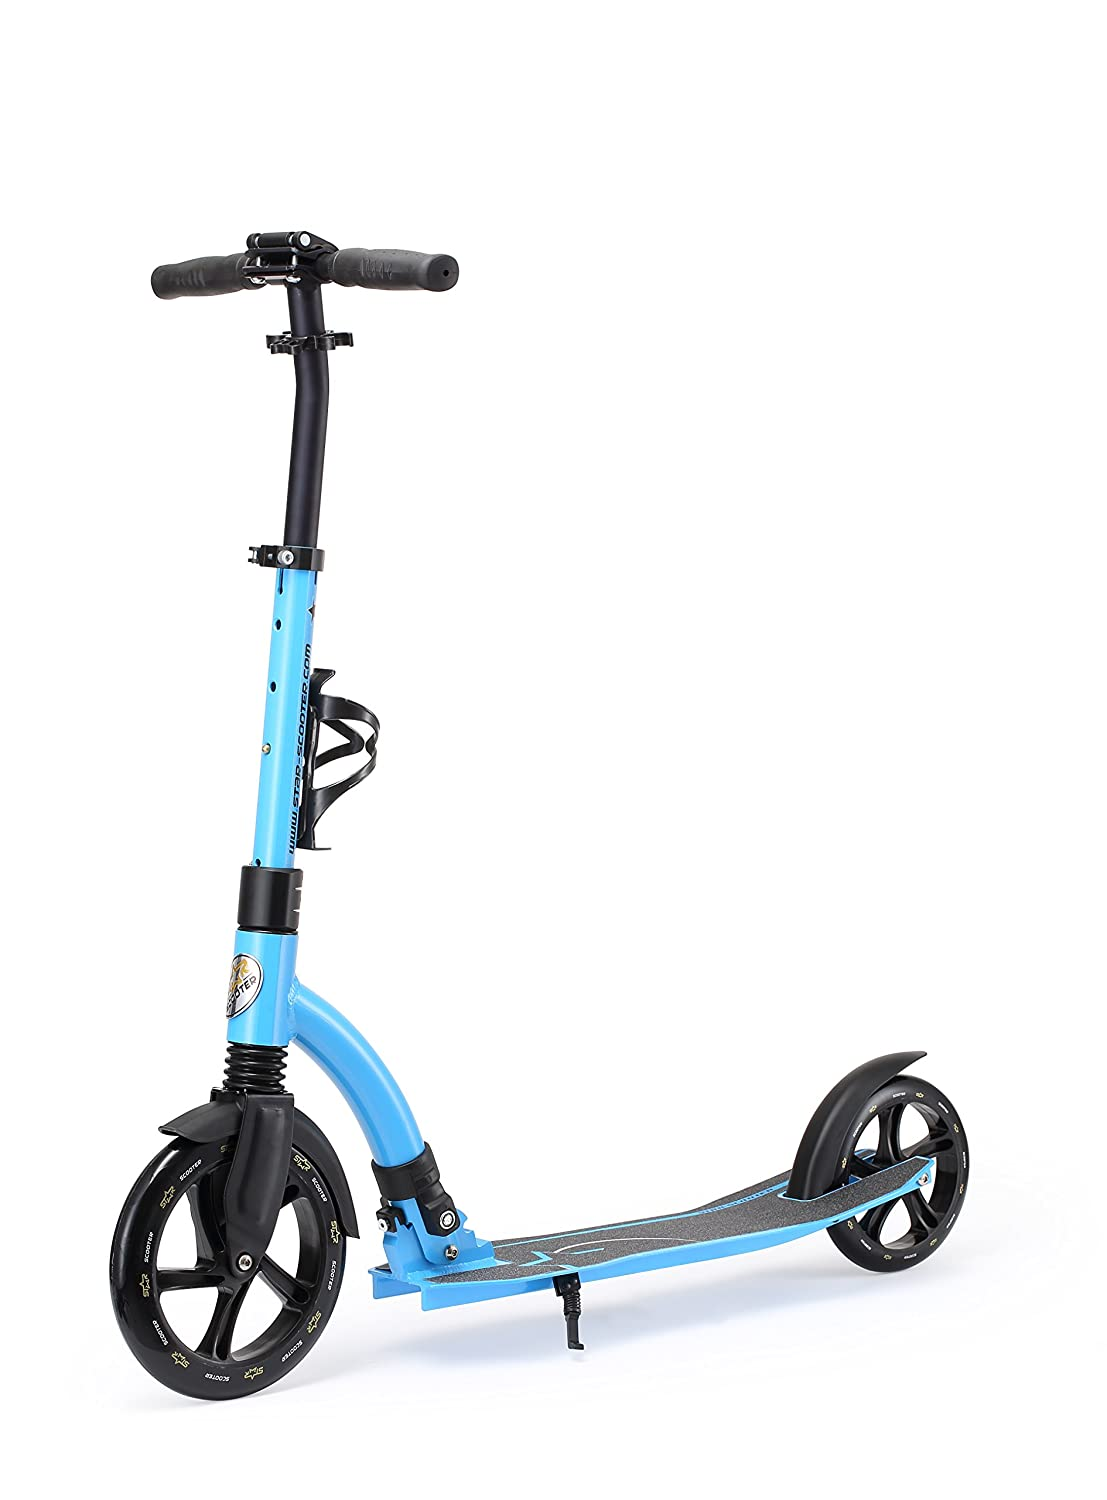 Star-Scooter Patinete 230mm Premium Big Wheel Plegable, para Adultos y niños Desde Aprox. 8 años ★ Ultimate Edition ★